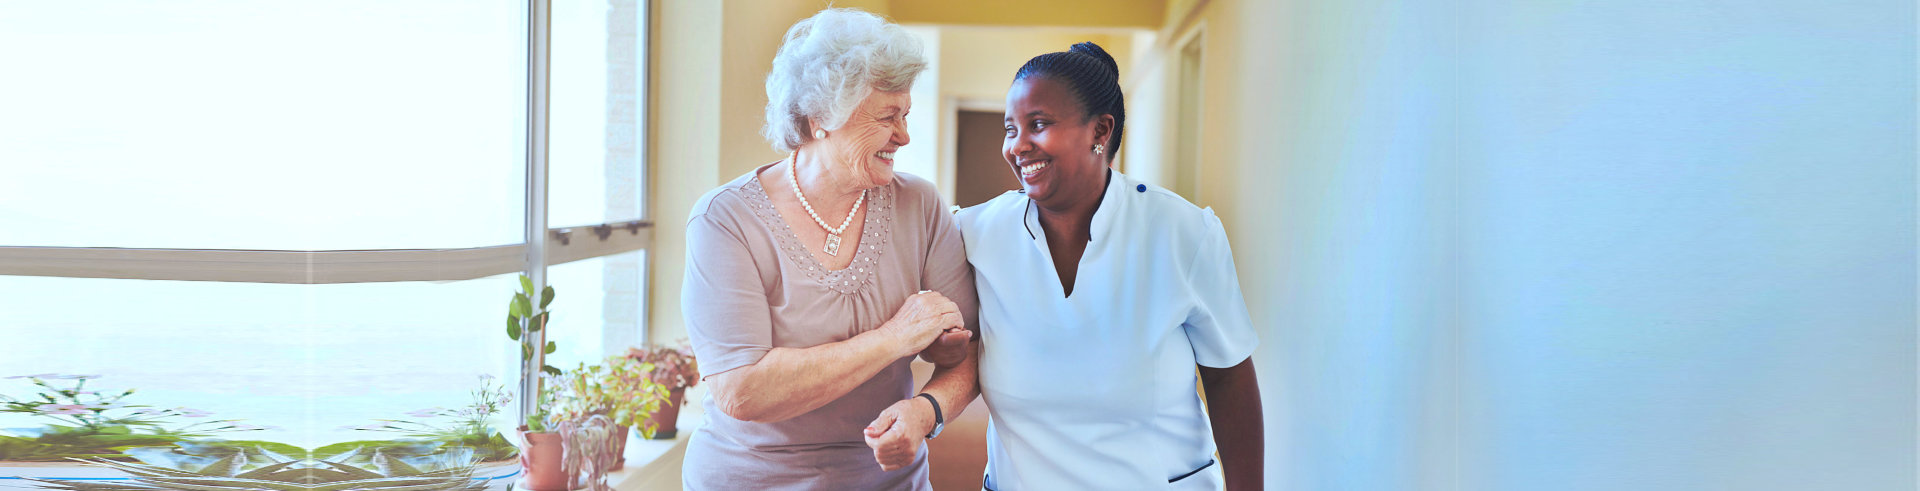 Portrait of smiling home caregiver and senior women walking together through a corridor